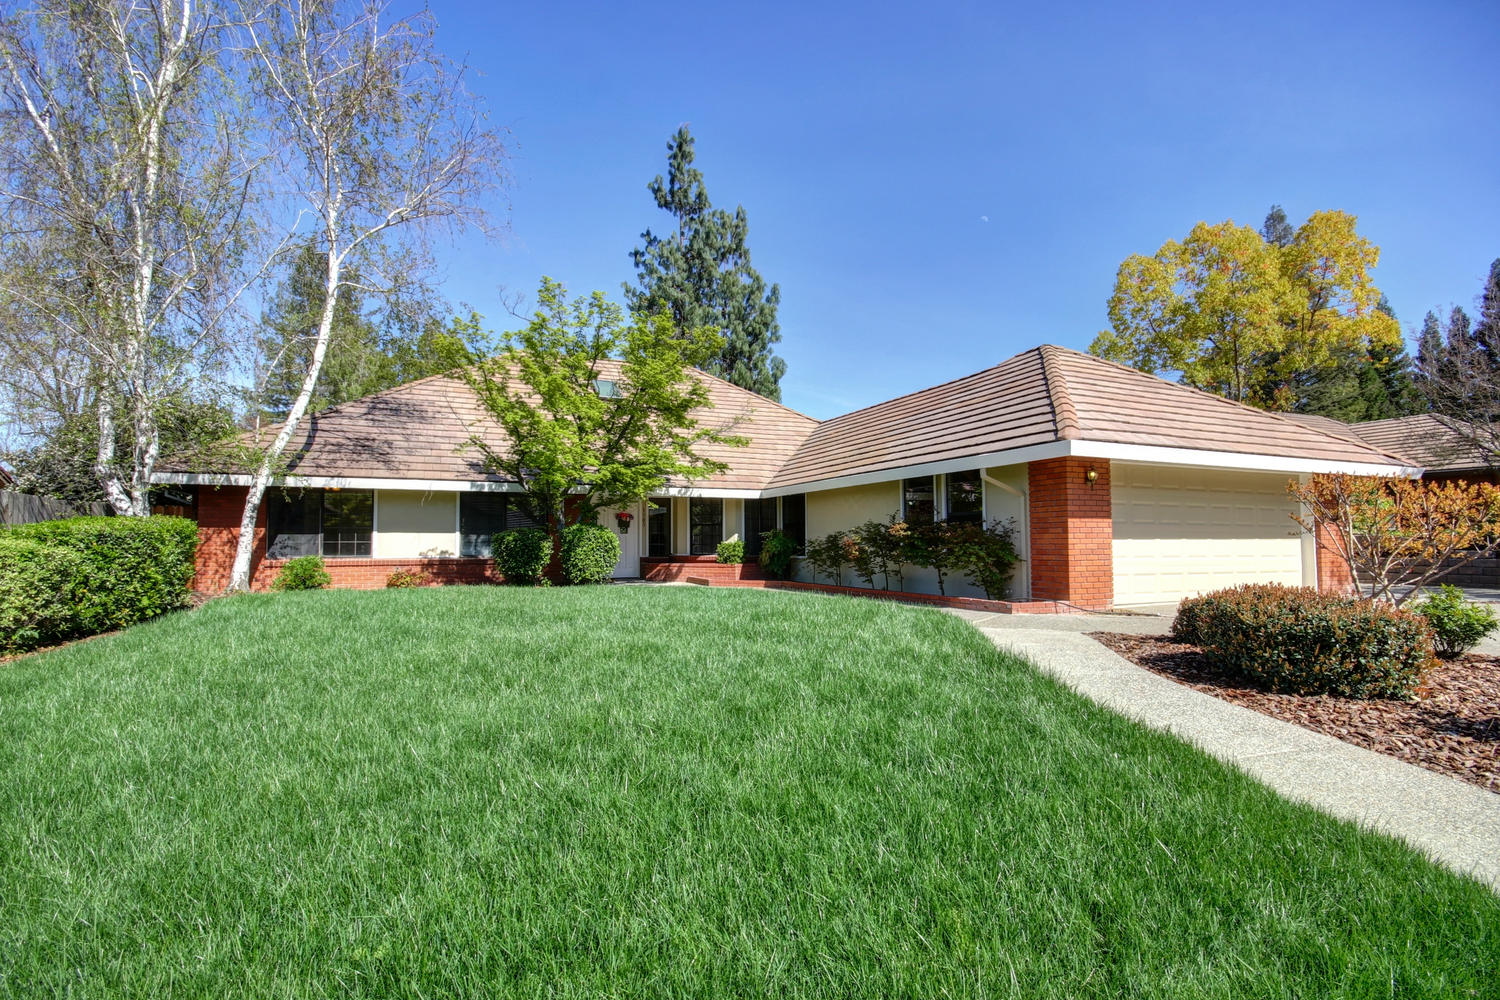 1105 Nob Hill Ct Roseville CA-large-001-2-01-1500x1000-72dpi